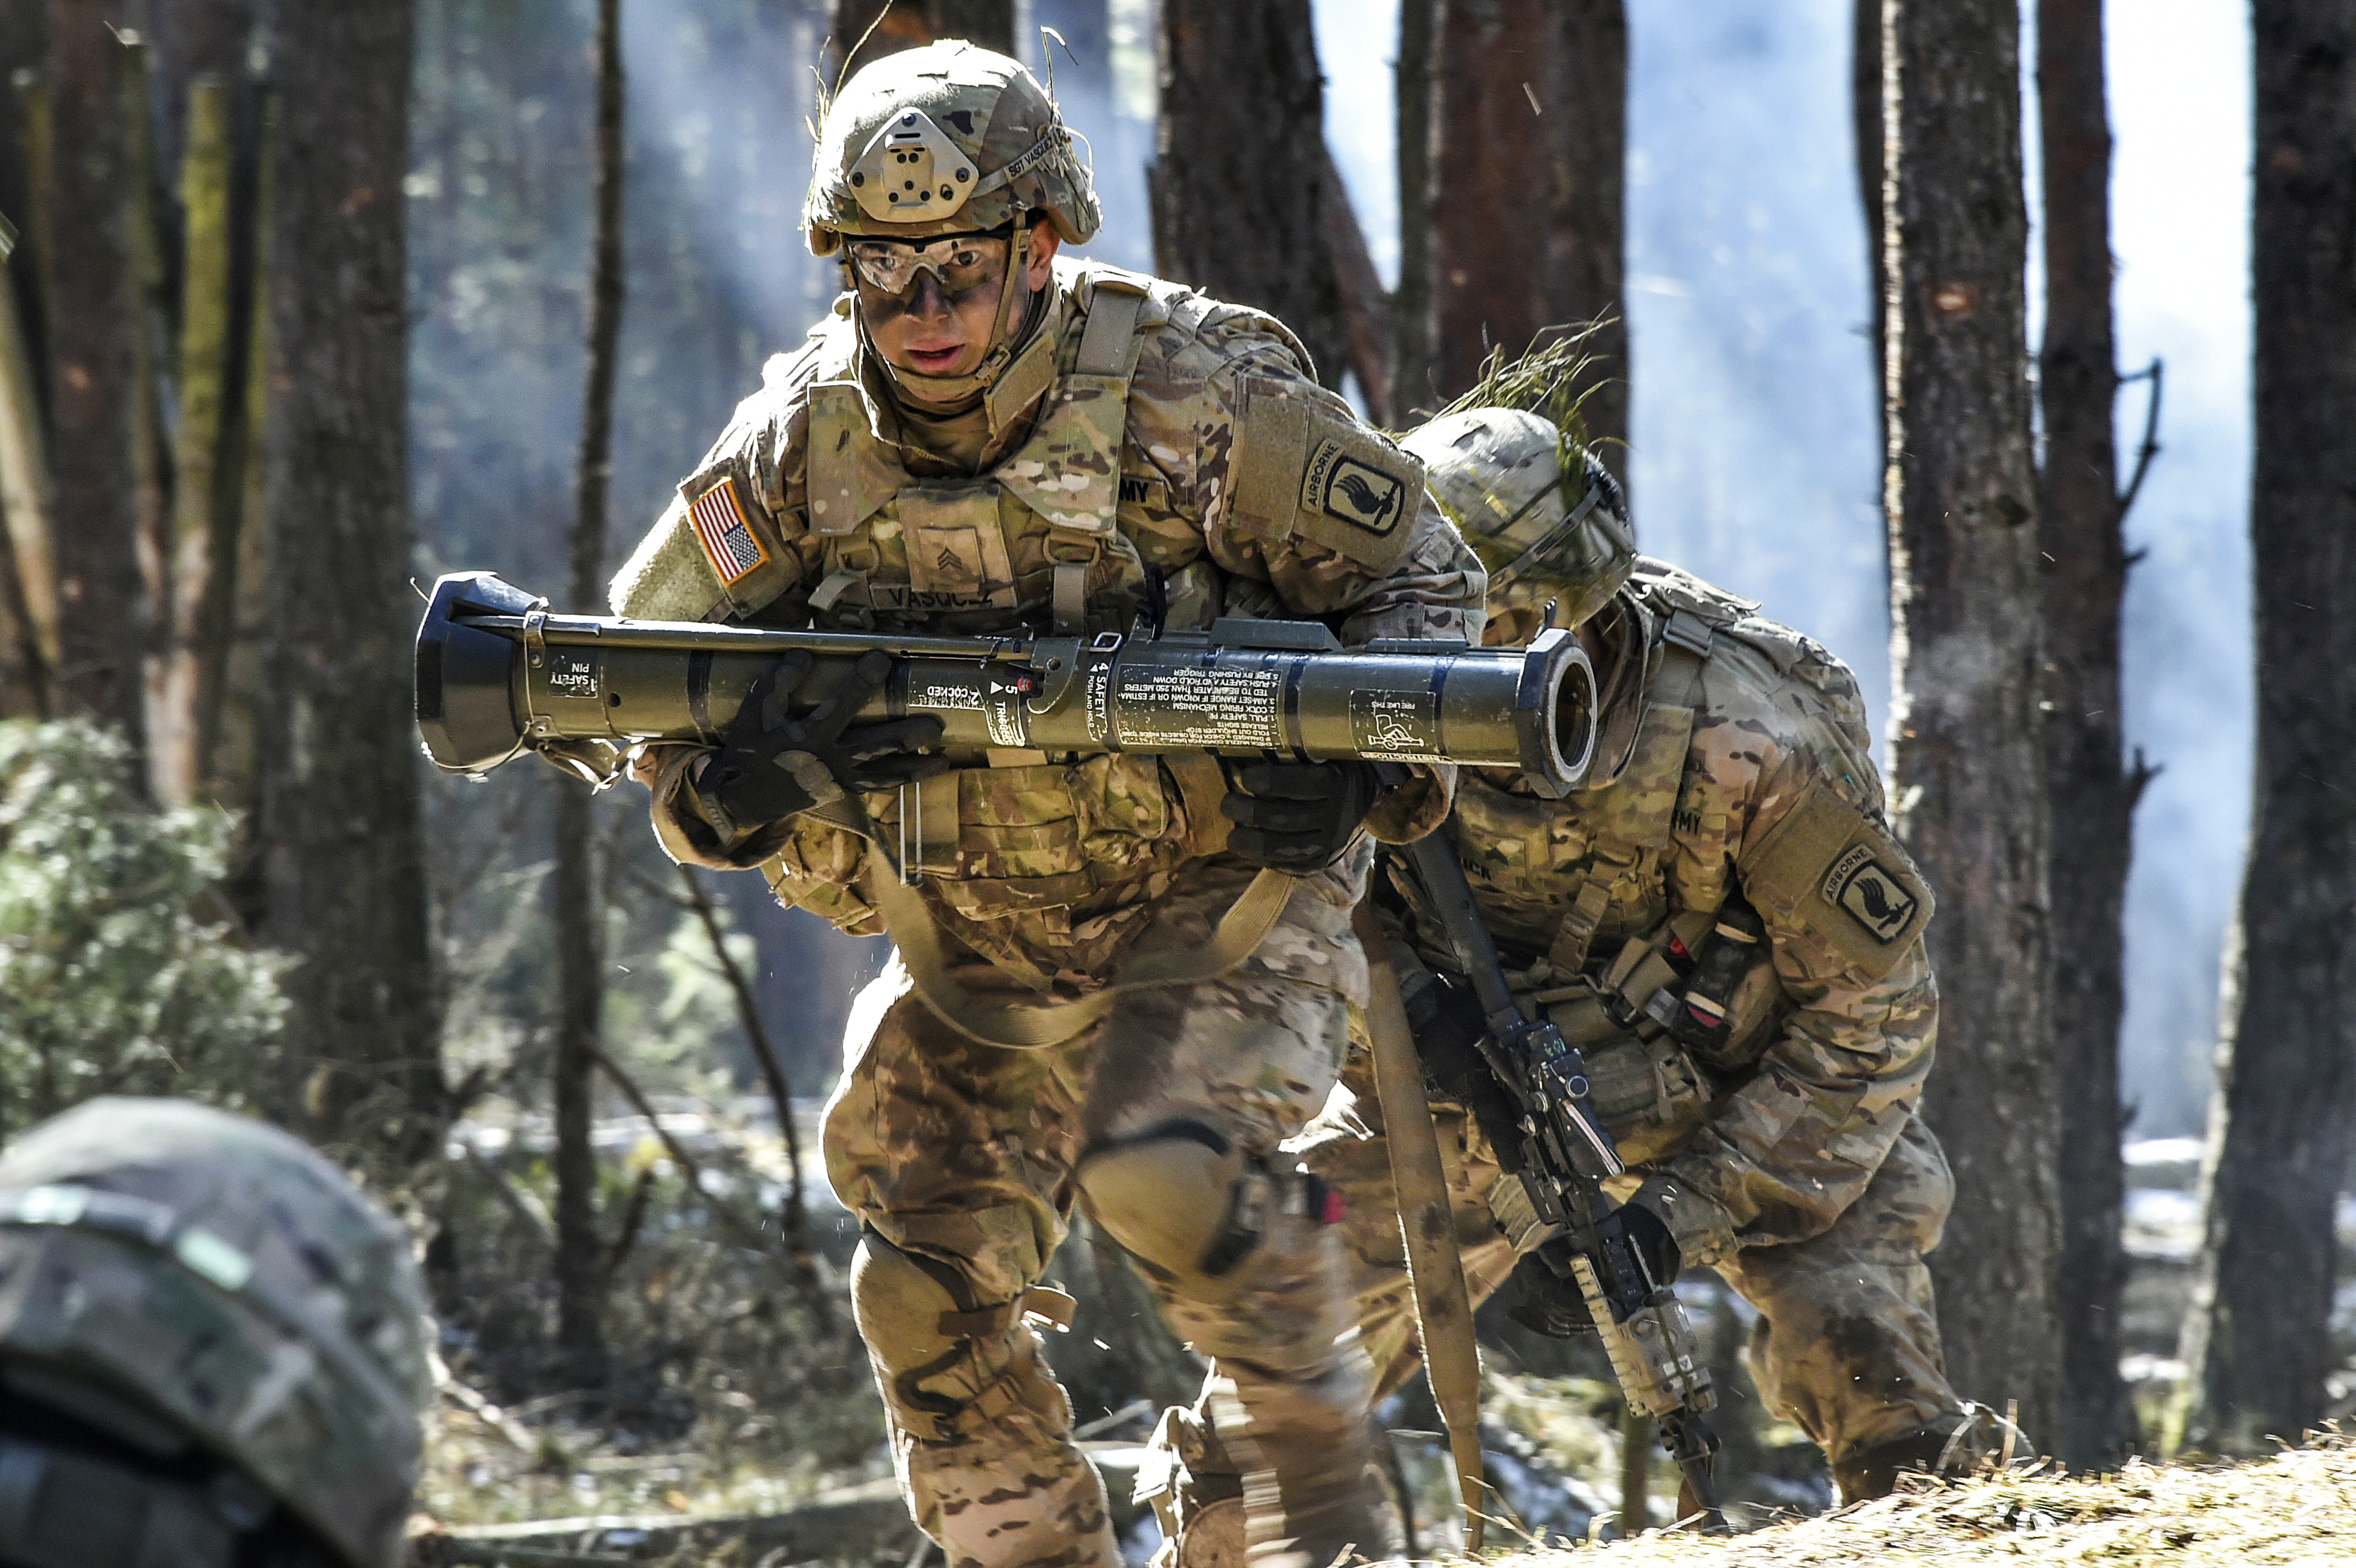 A U.S. Army Paratrooper with 2nd Battalion, 503rd Infantry Regiment, 173rd Airborne Brigade carries a AT-4 training grenade launcher during a platoon level live fire exercise at the 7th Army Training CommandÕs Grafenwoehr Training Area, Germany, March 21, 2018. (Gertrud Zach/Army)